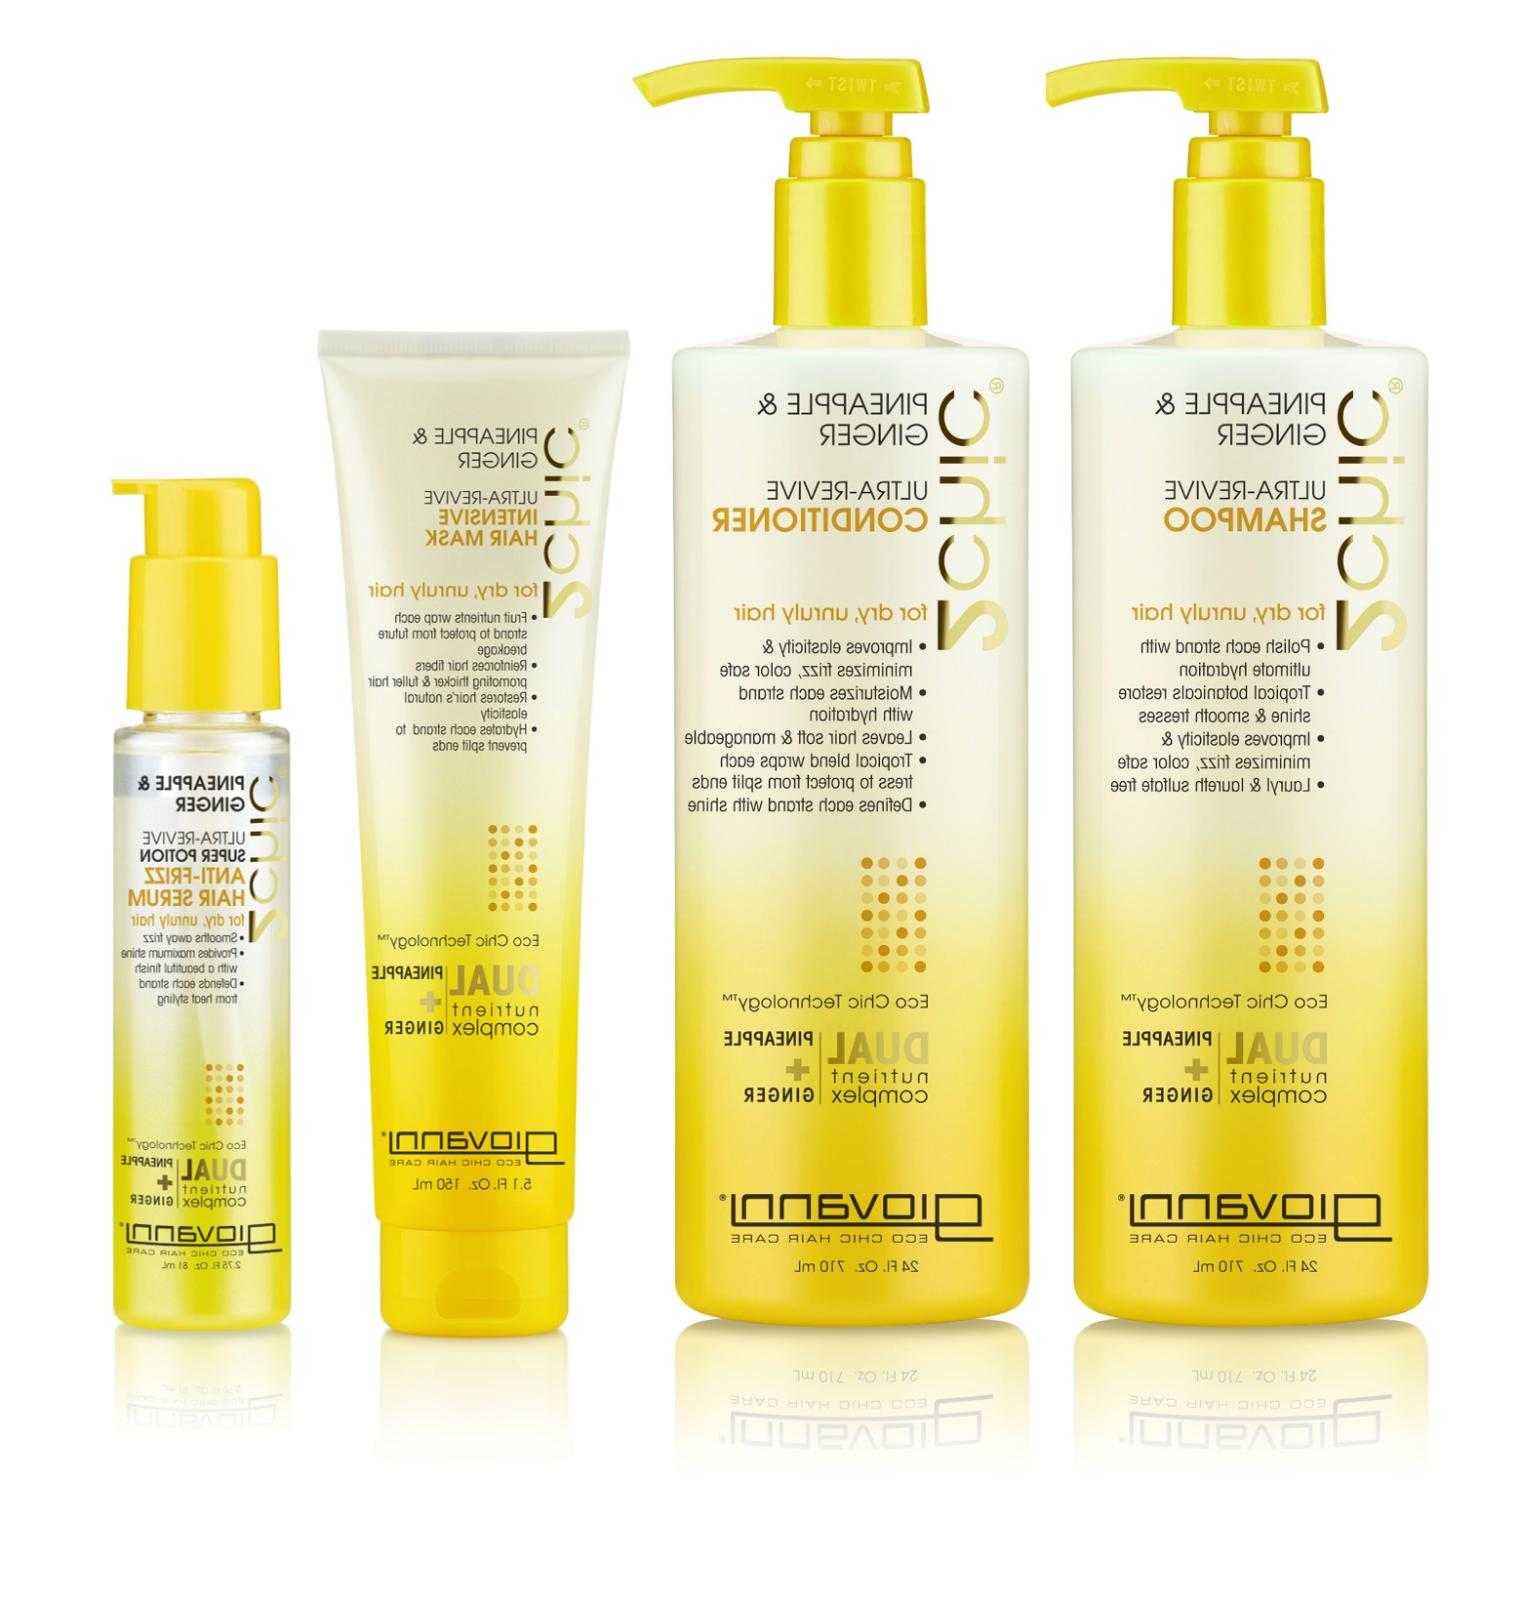 hair kit for summer shampoo and conditioner